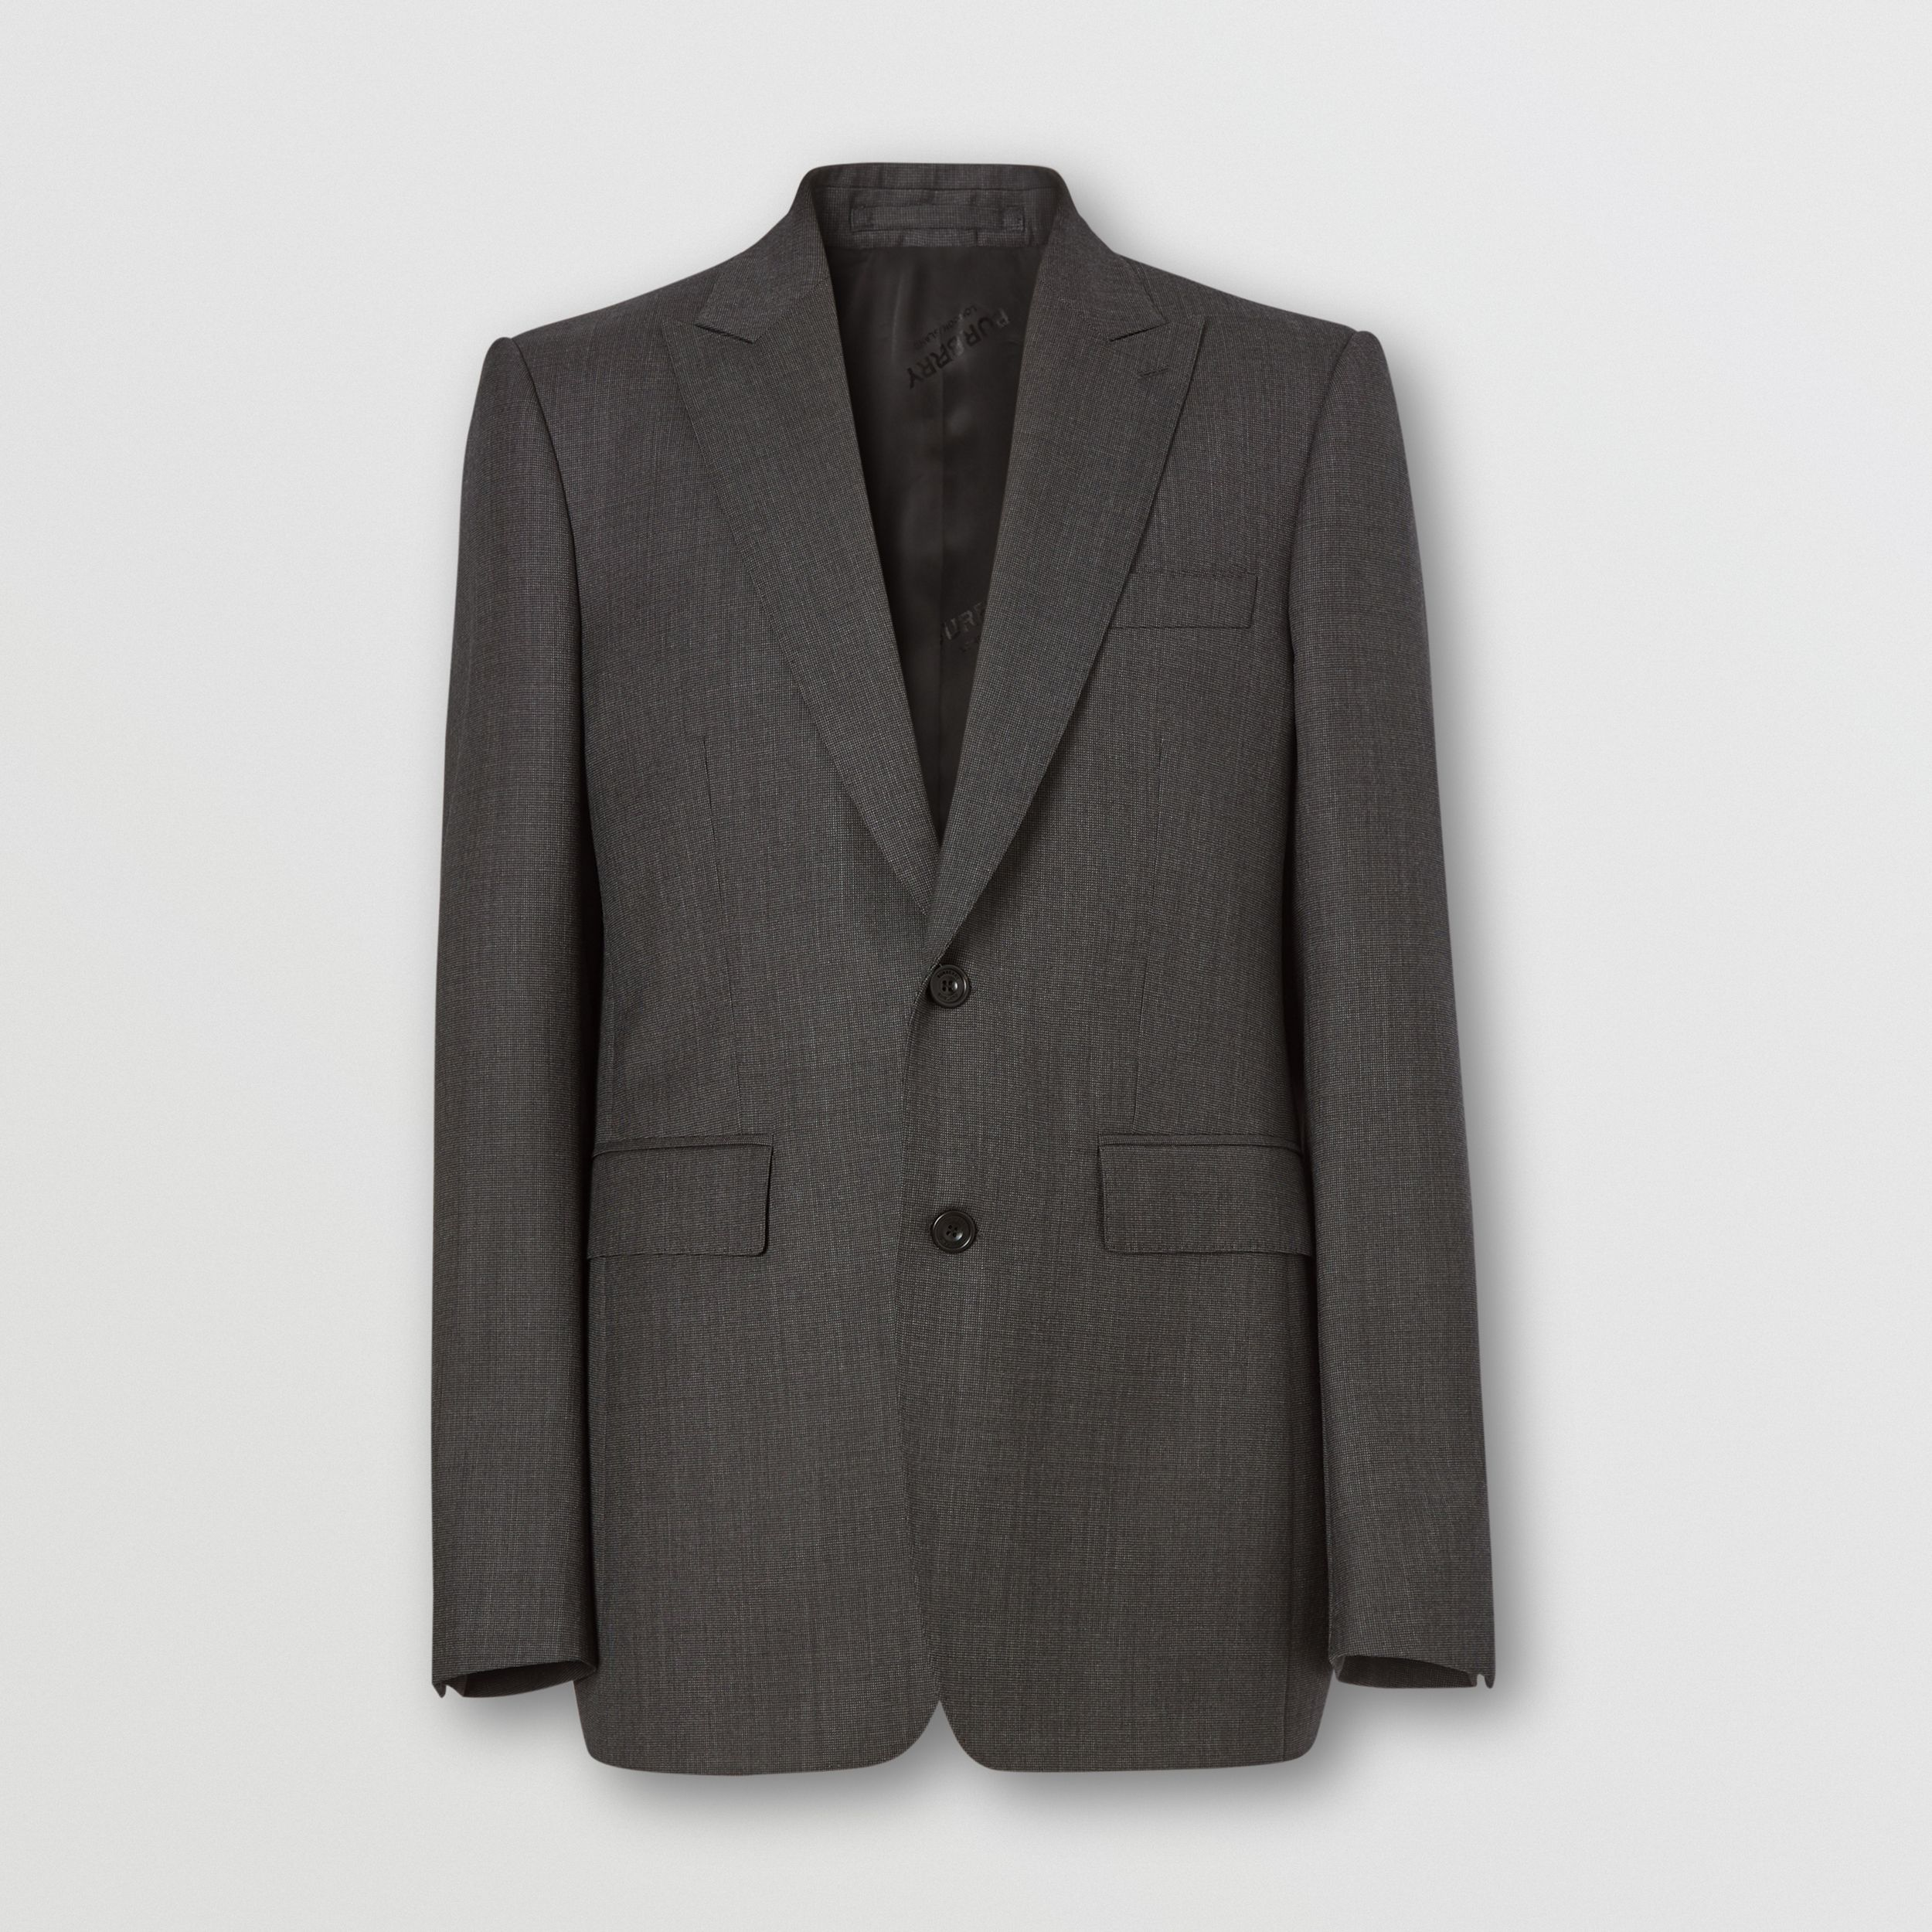 Classic Fit Broken Wool Twill Suit in Mid Grey - Men | Burberry - 4